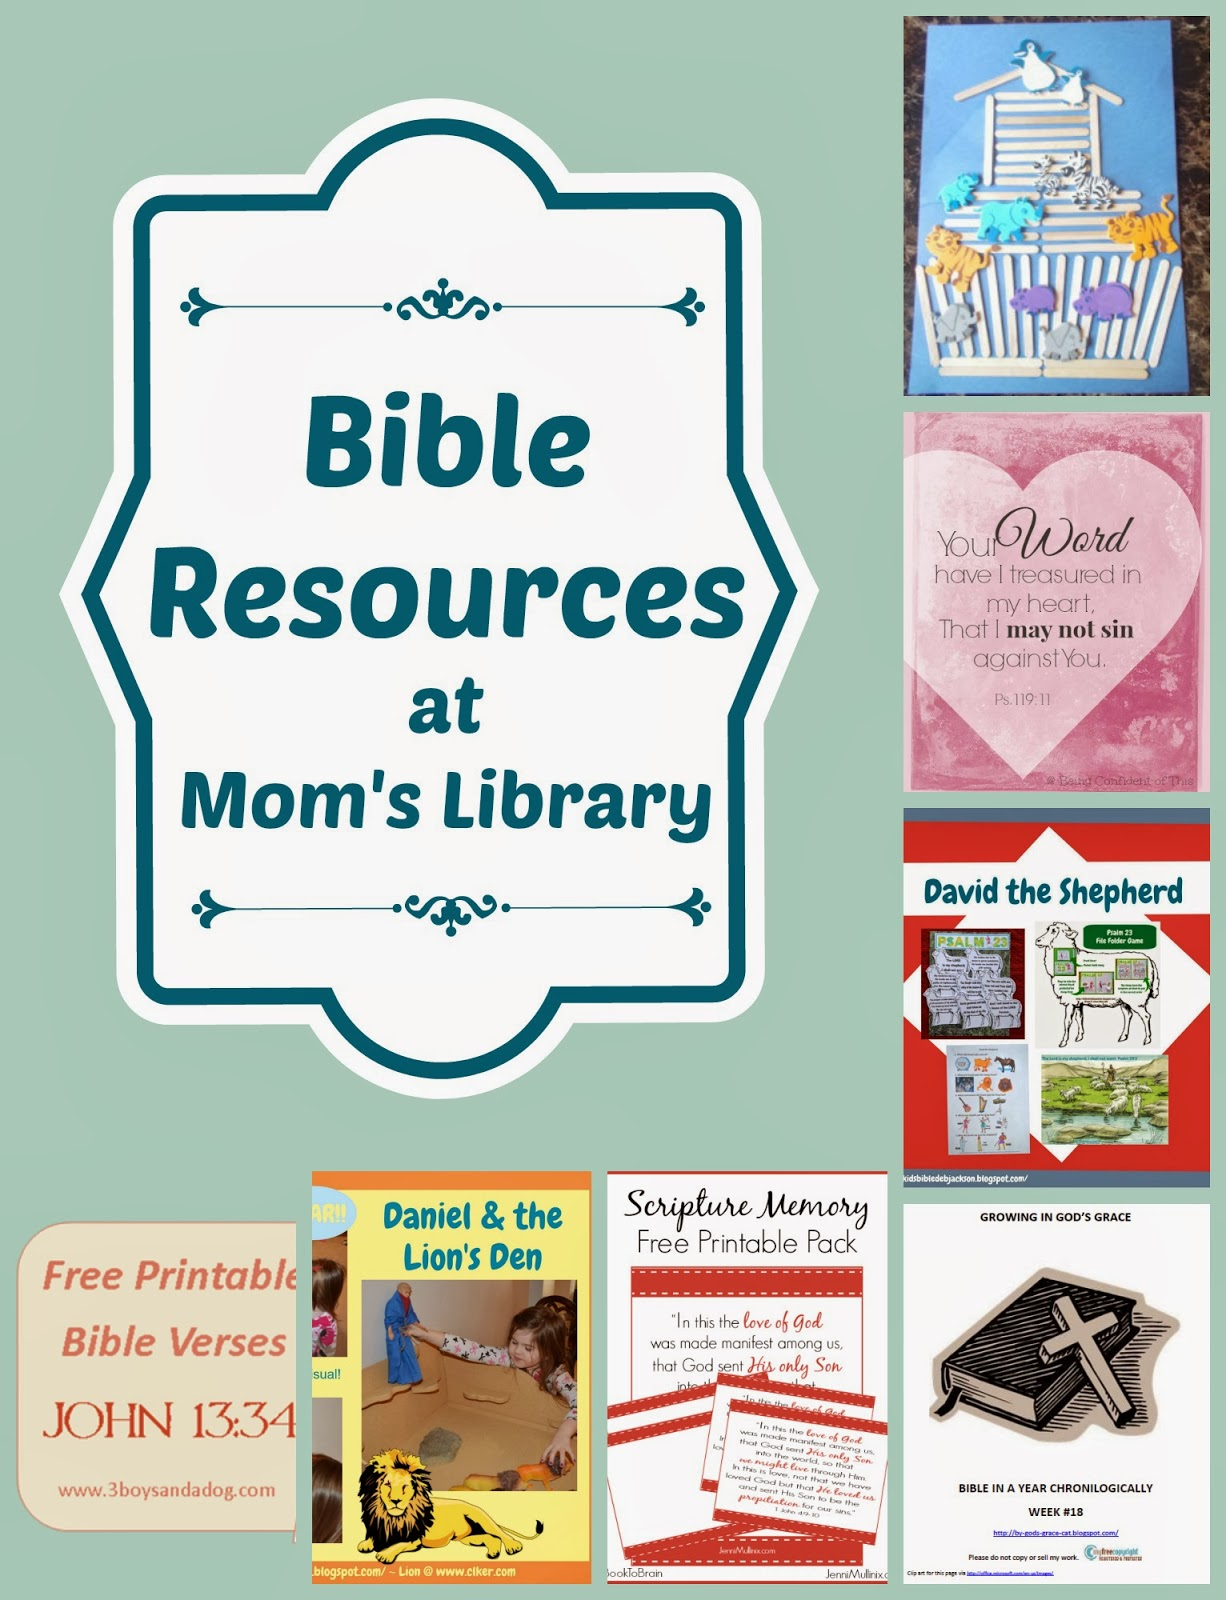 Mom's Library - Bible Resources